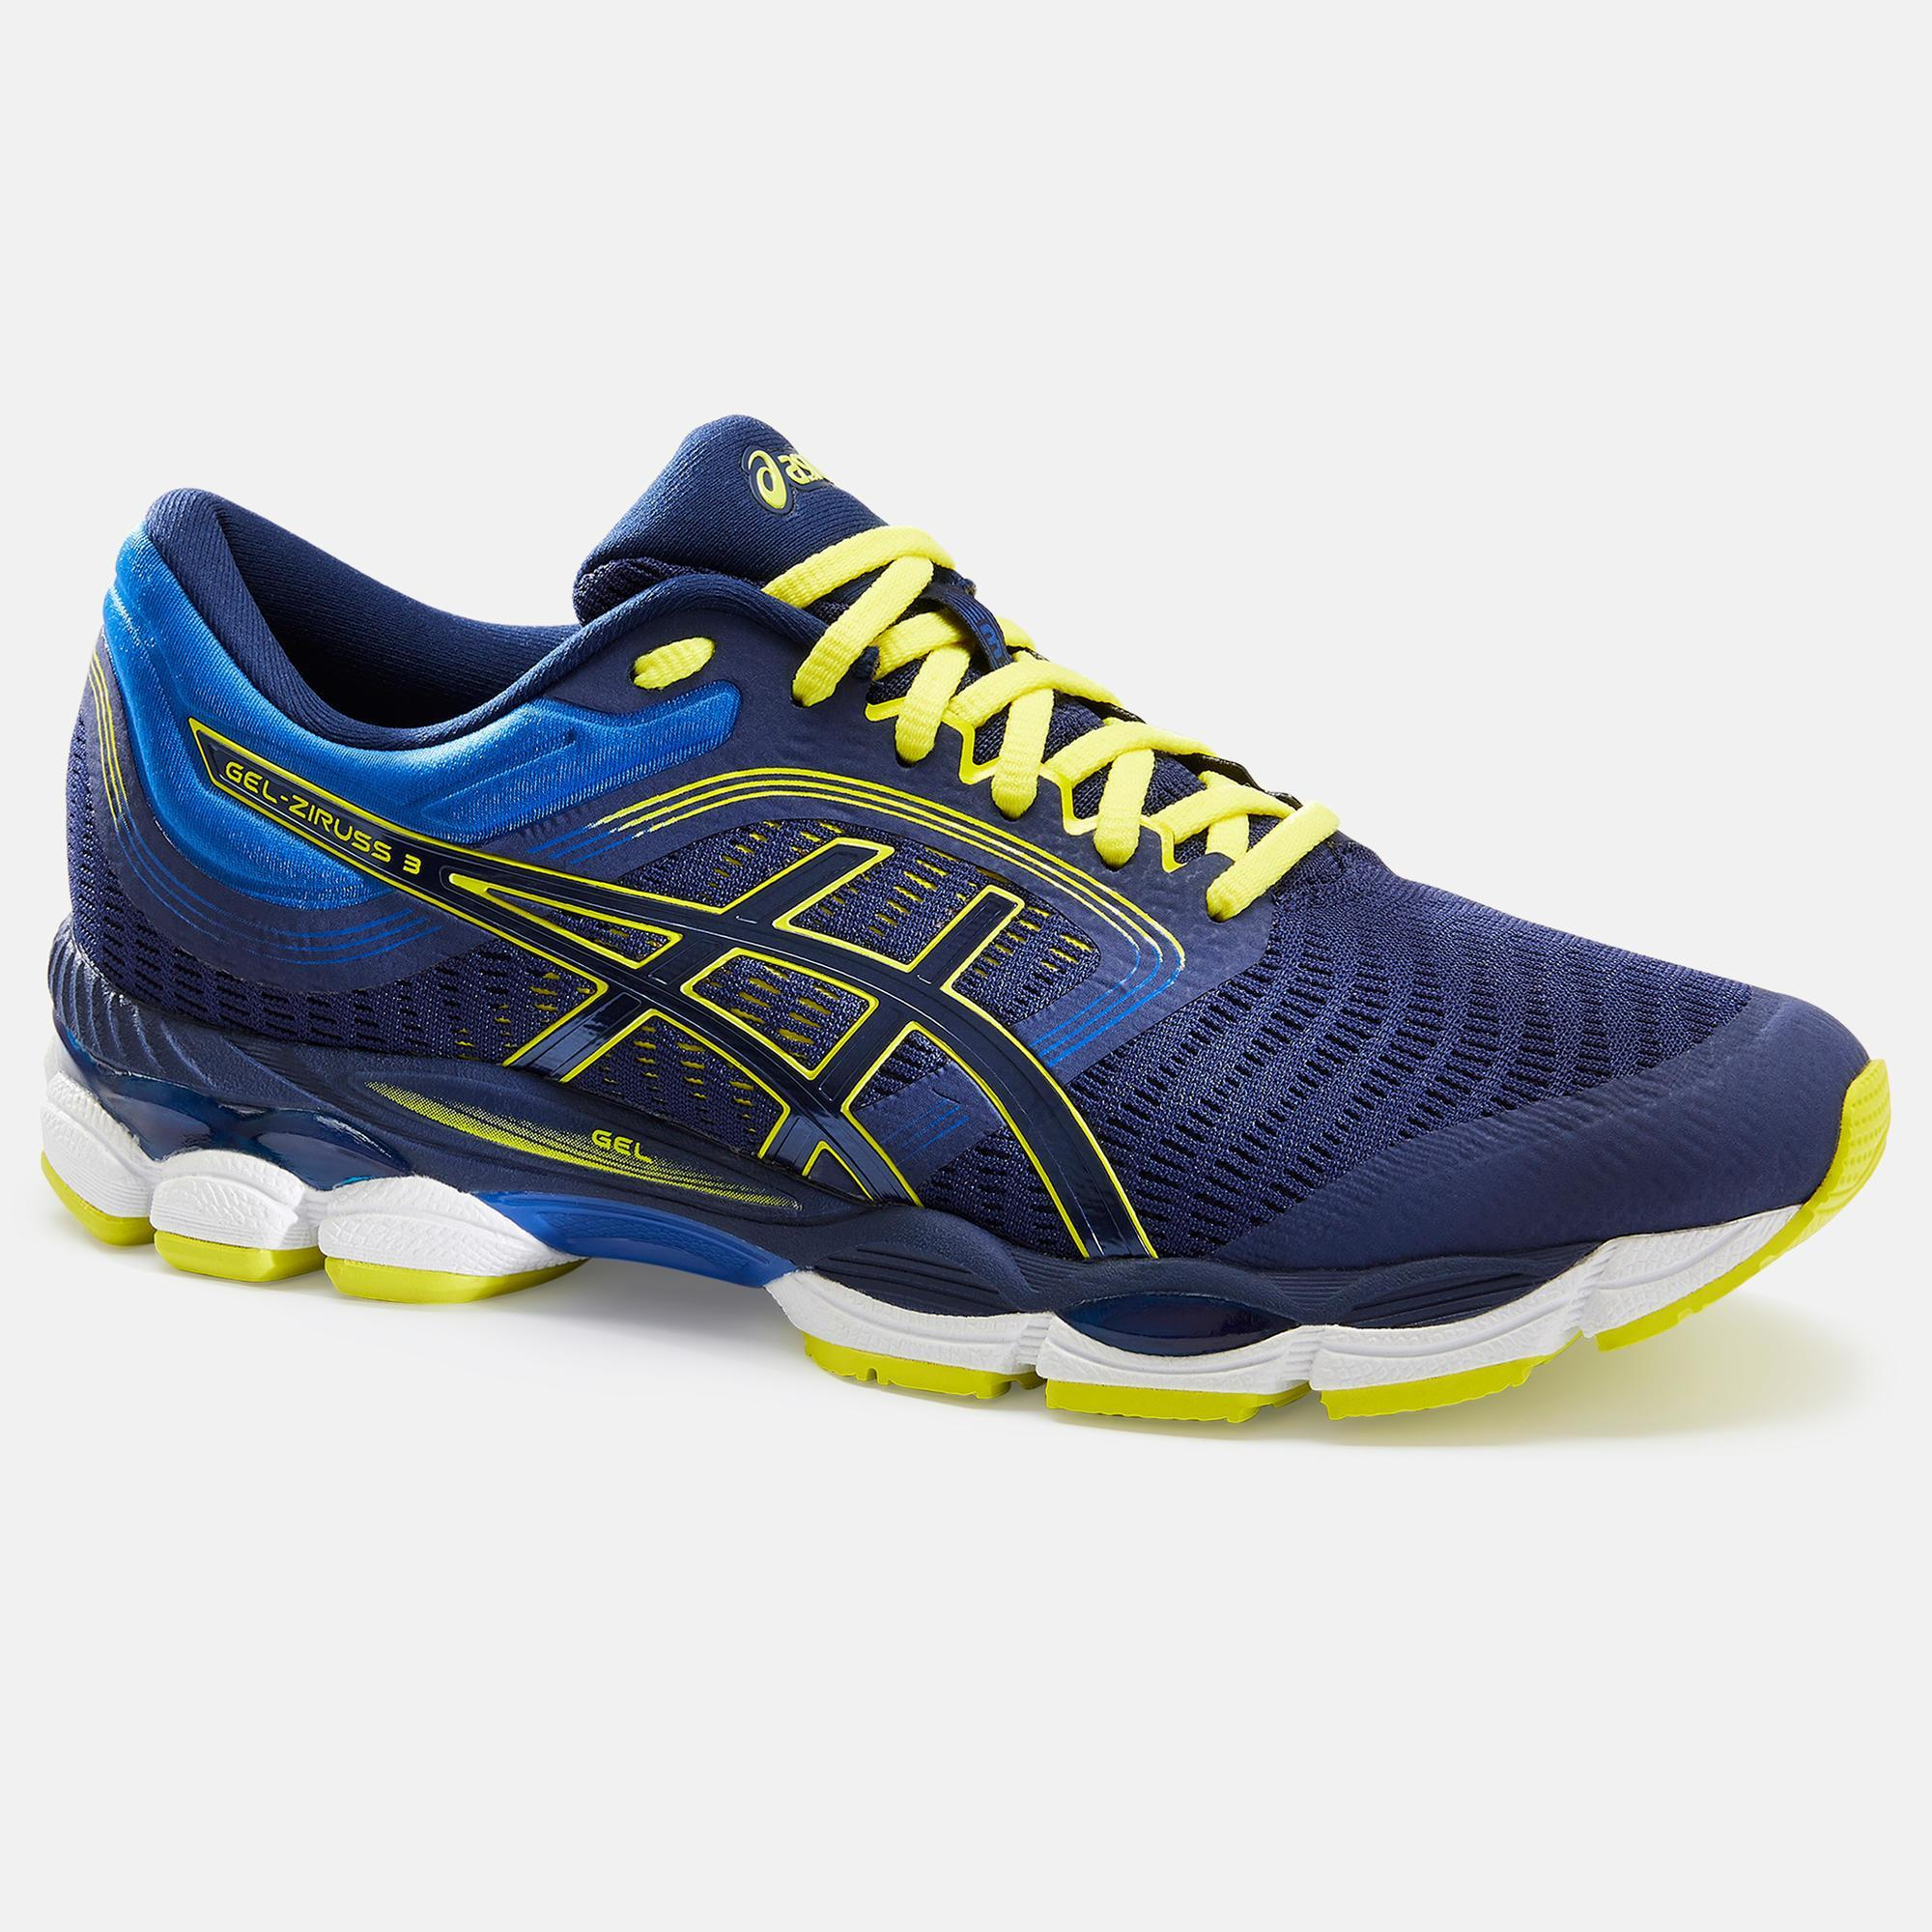 low price sale more photos buy popular Chaussures homme - Jogging, Running, Trail | Decathlon